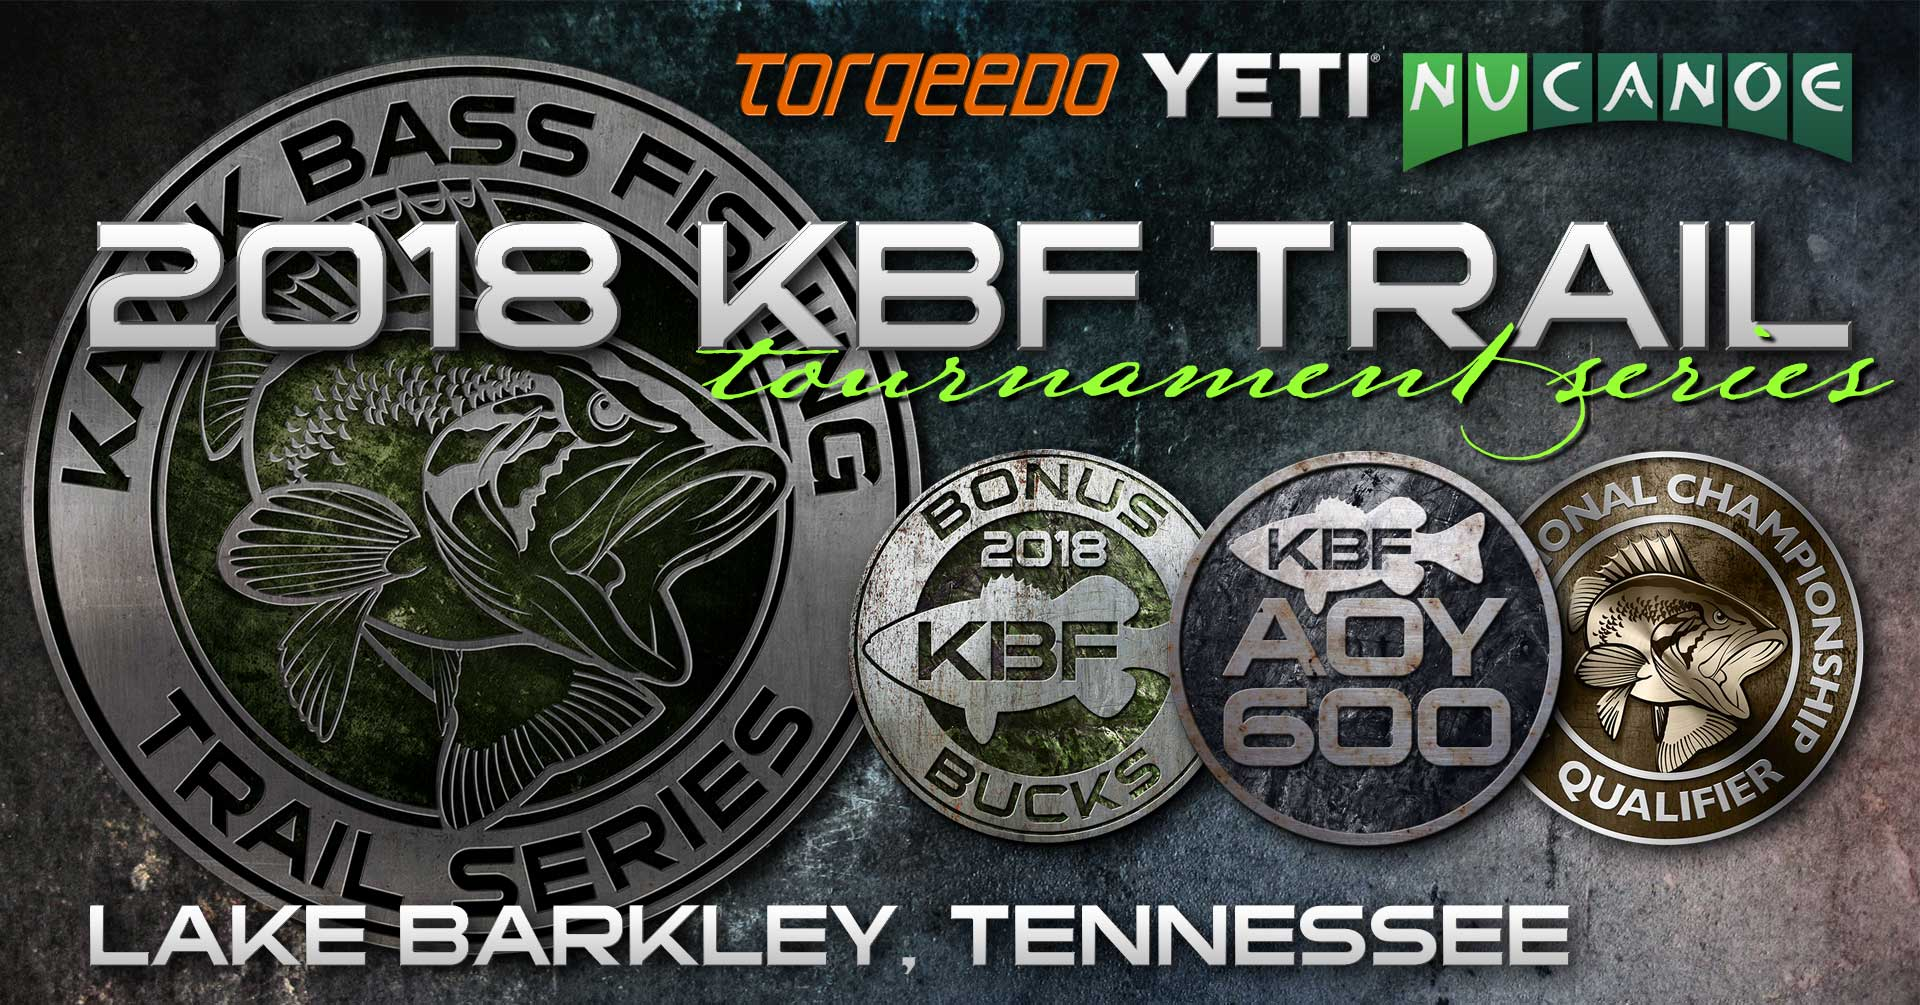 2018 KBF TRAIL Series Tournament on Lake Barkley, TN